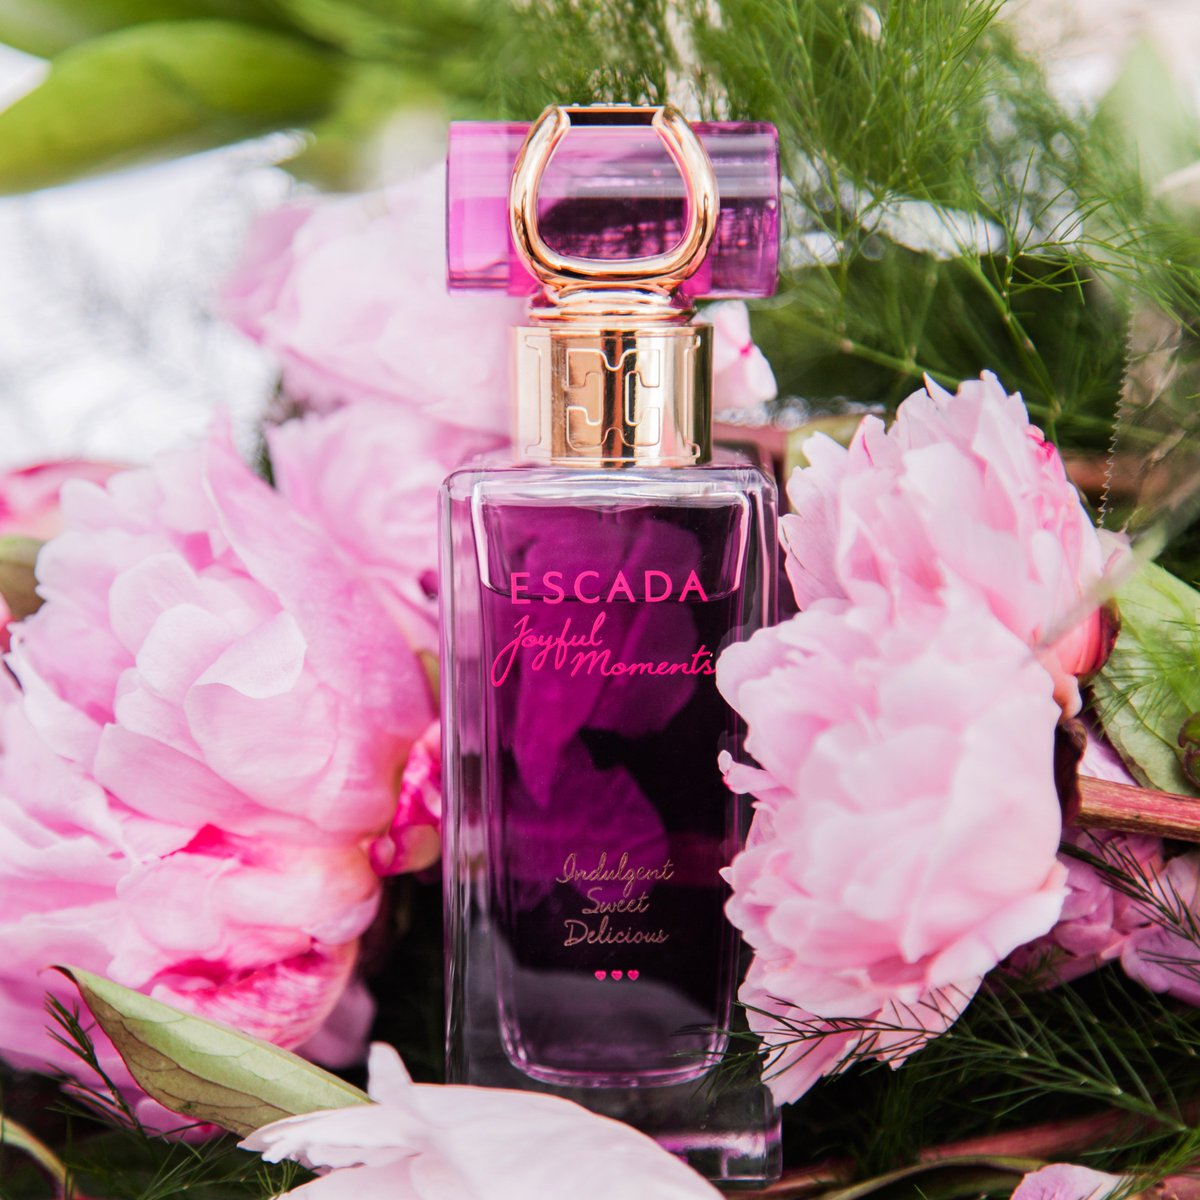 Flowers & perfume are great Thank You gifts! My faves are peonies, also a key note in #EscadaJoyful. Perfect combo! https://t.co/6PBwhDx4f5